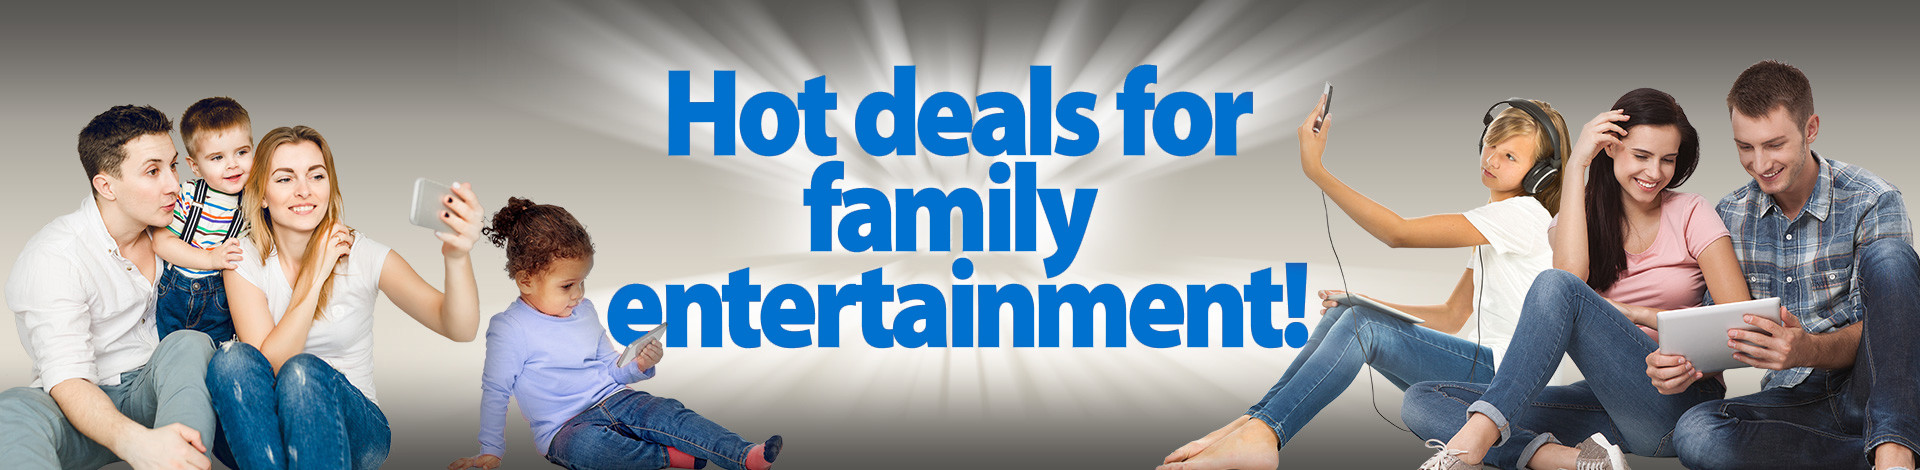 Hot deals for family entertainment